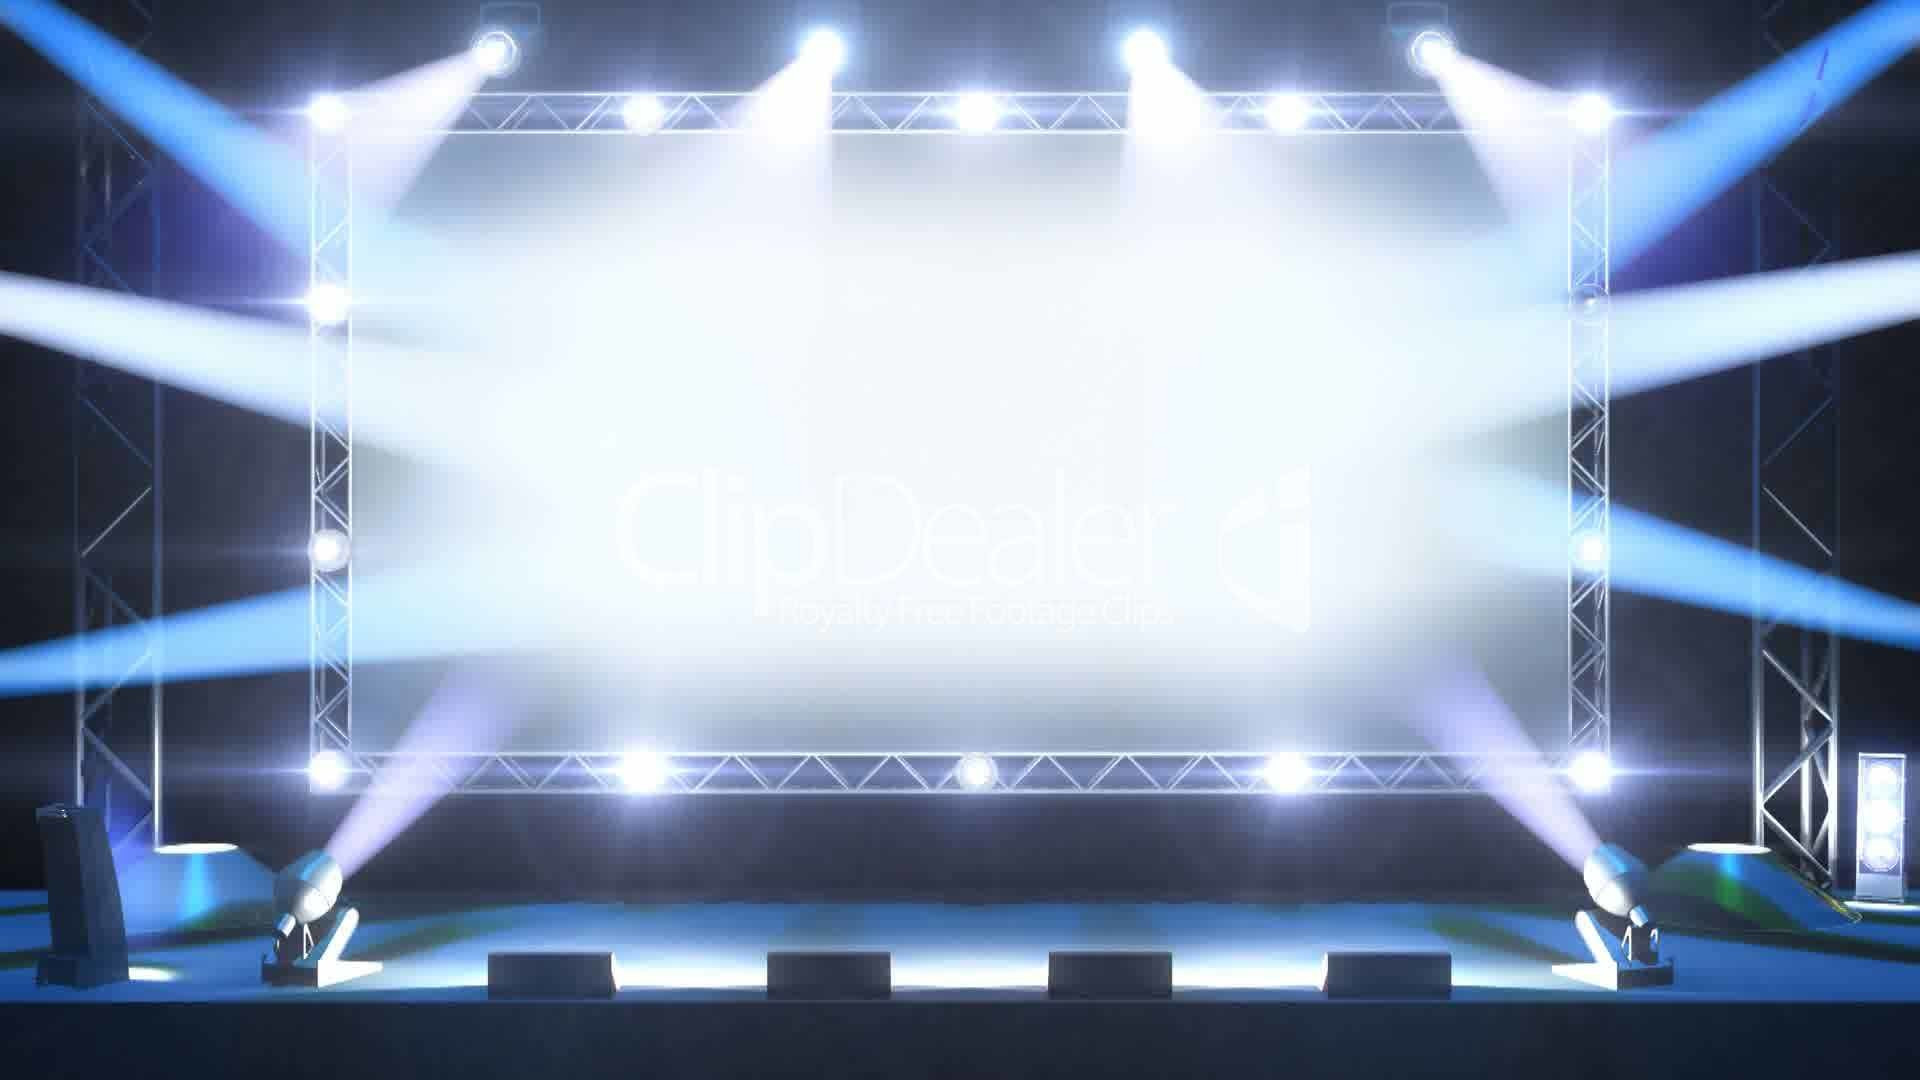 1920x1080 Stage Lights Wallpaper Download By SizeSmartphone Medium Size Full